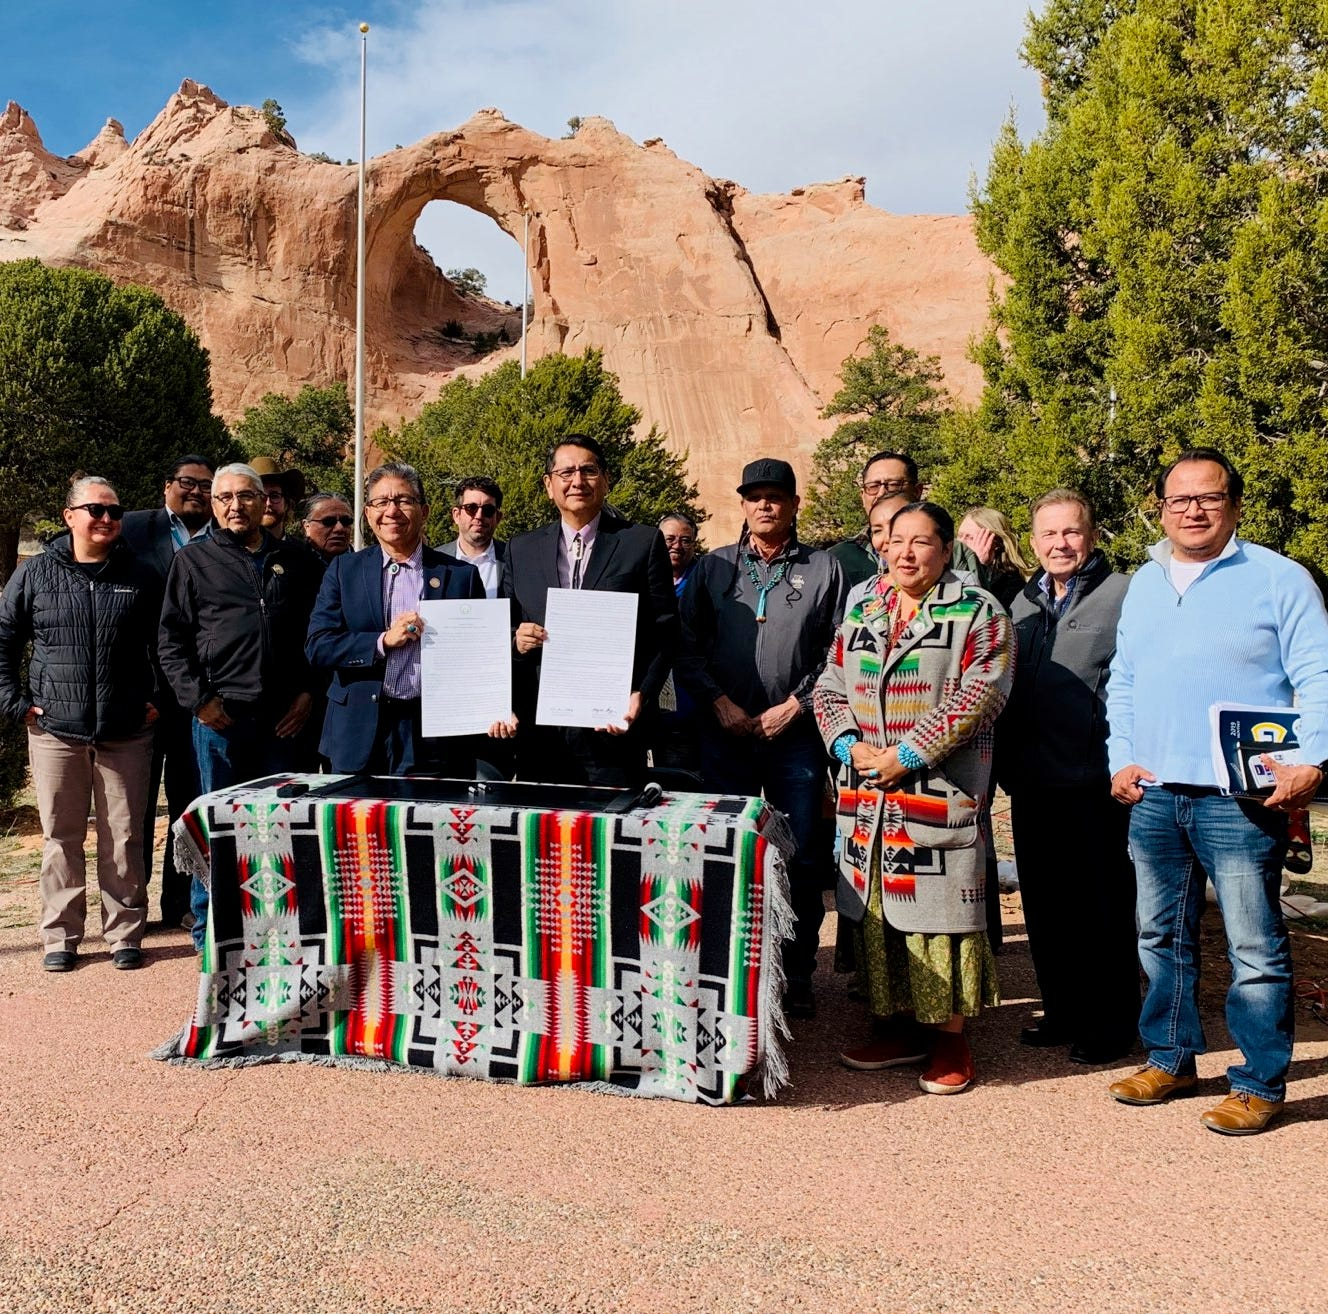 Proclamation supports renewable energy transition for Navajo Nation